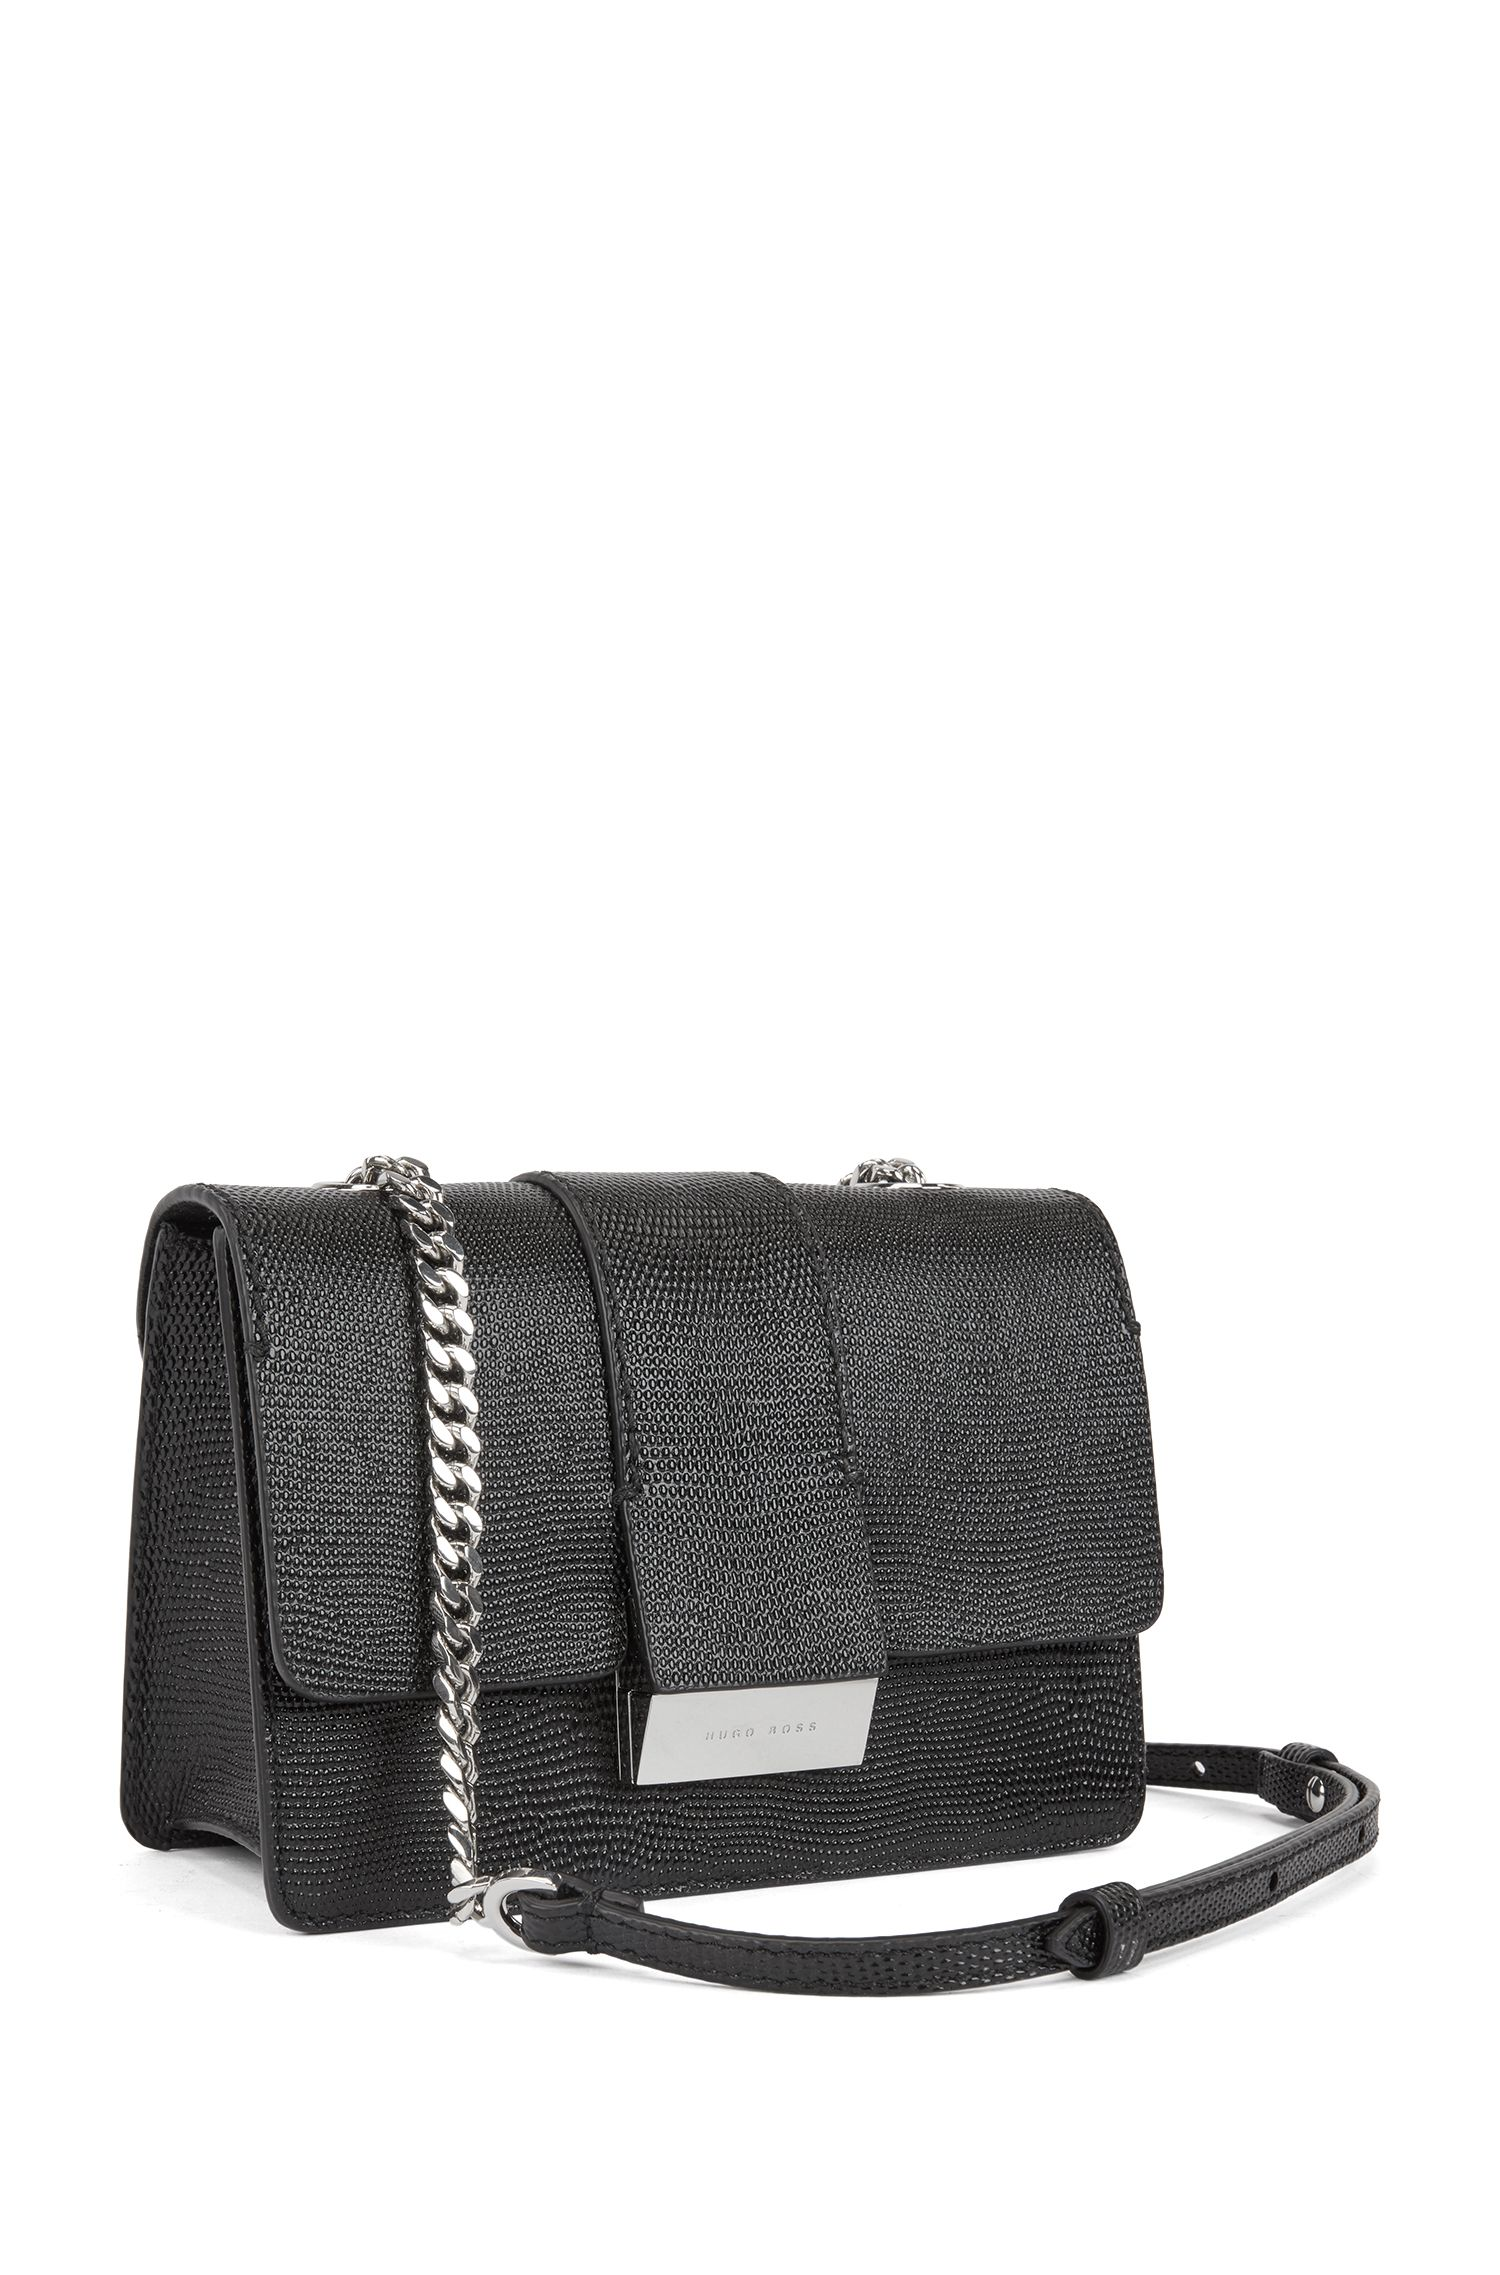 Crossbody bag in lizard-print calf leather, Black